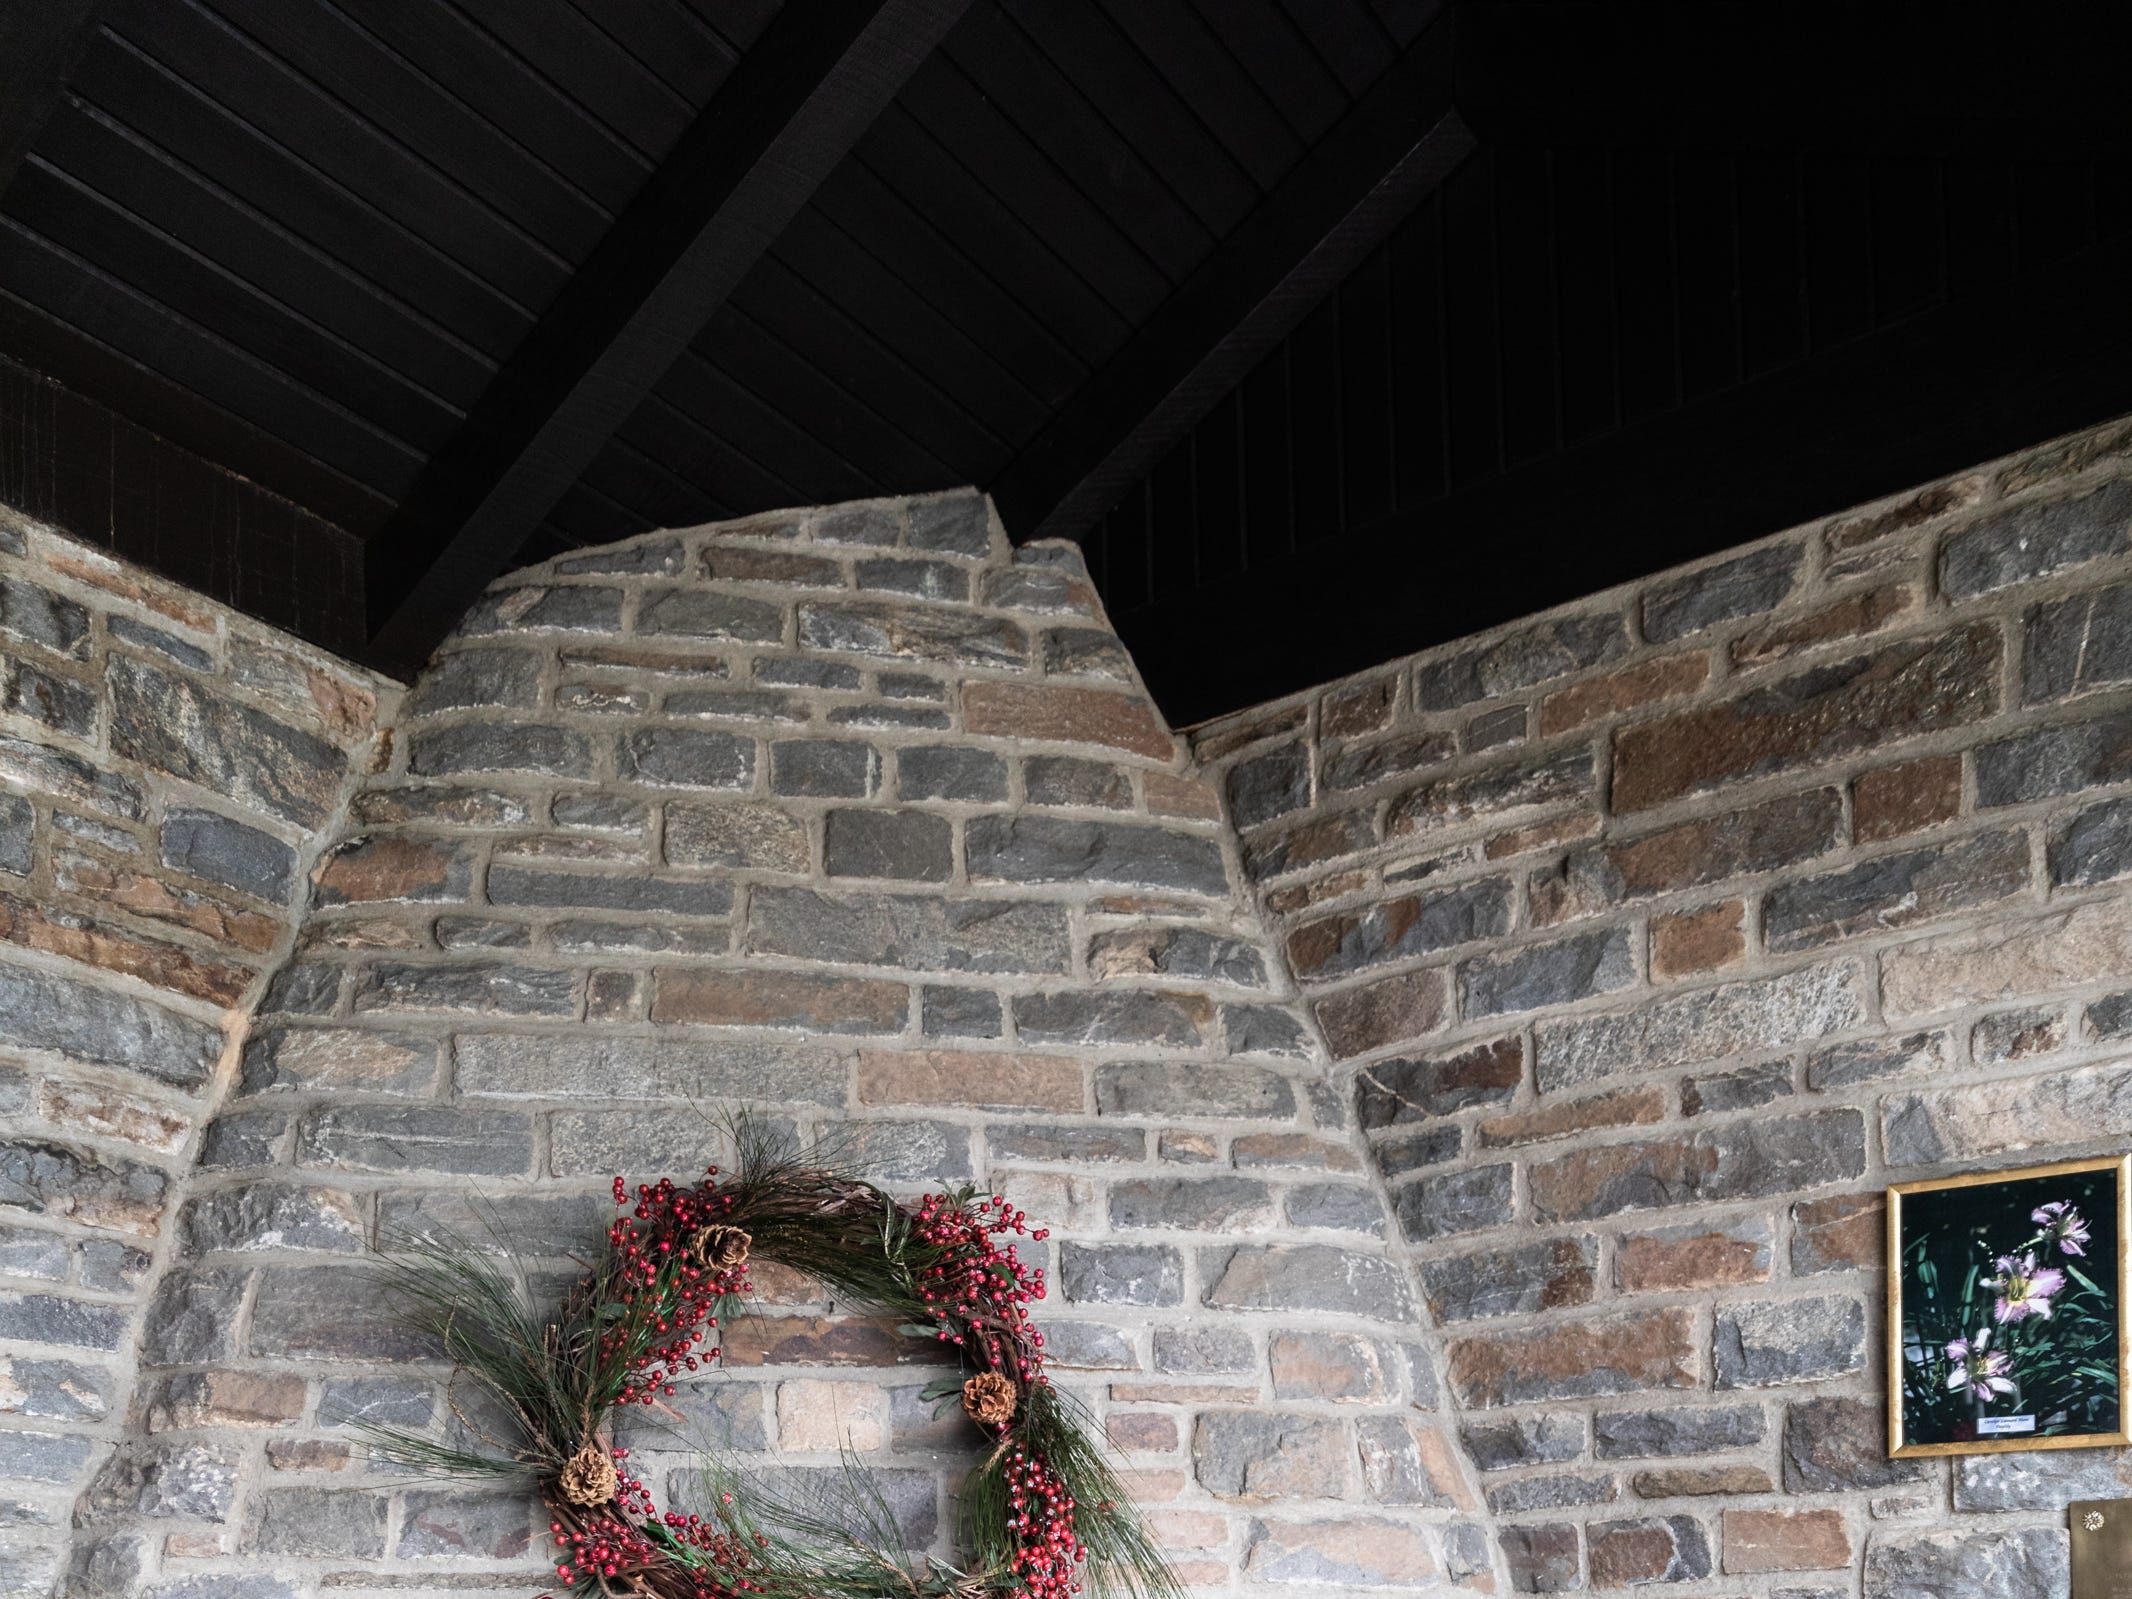 The fireplace in the foyer of the Governor's Western Residence on Patton Mountain Road in Asheville, decorated with a wreath for the holidays.